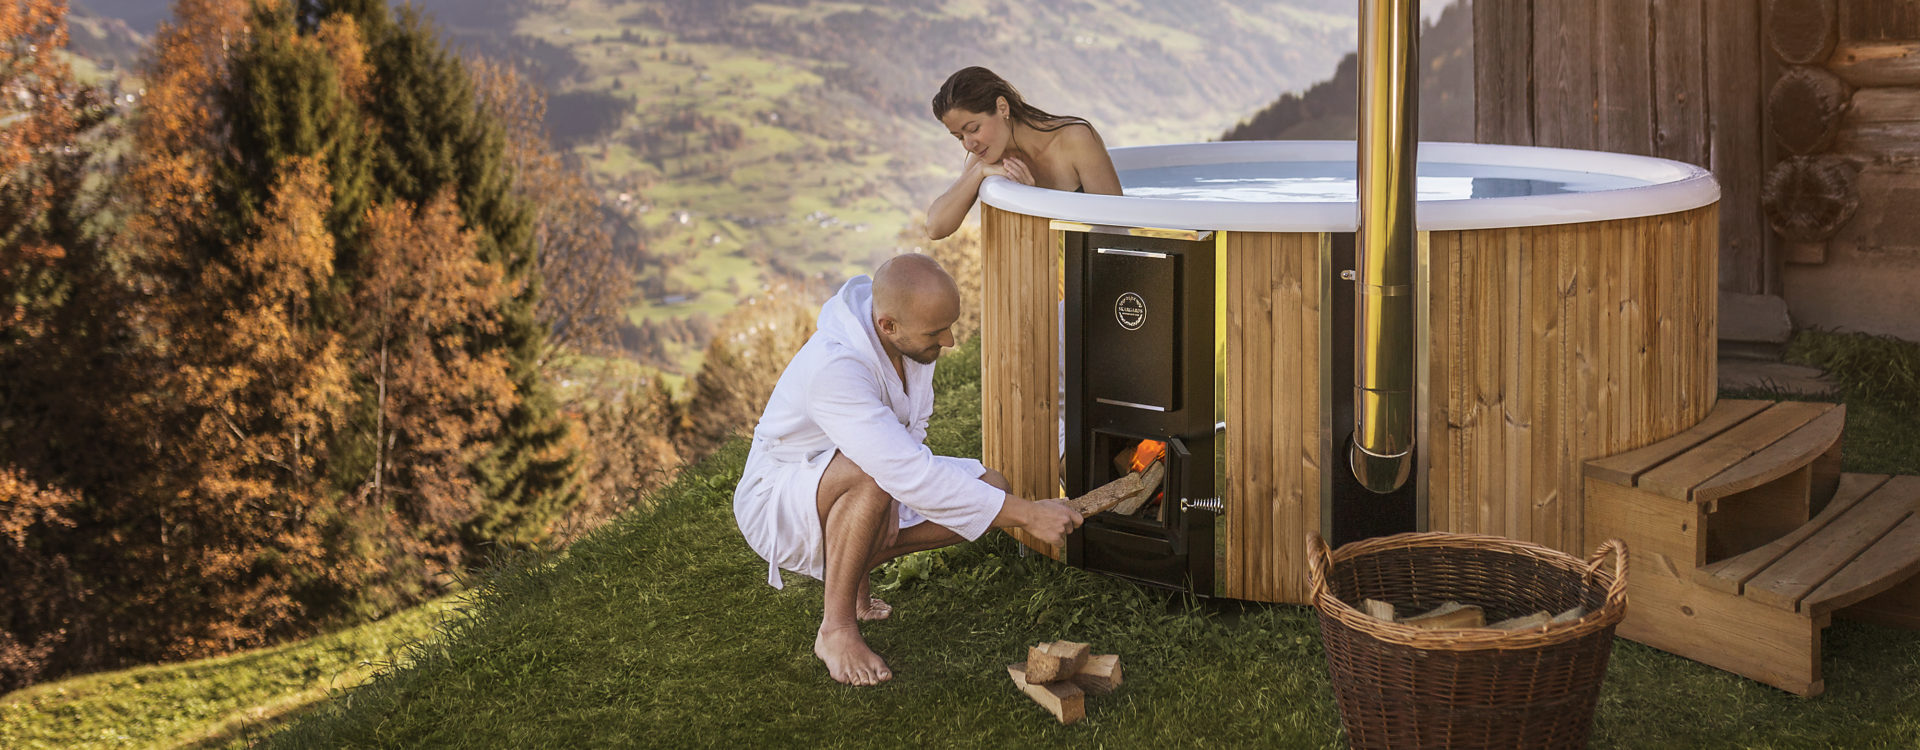 A women sitting in the hot tub that is placed next to a wooden house, while a man is firing up the stove